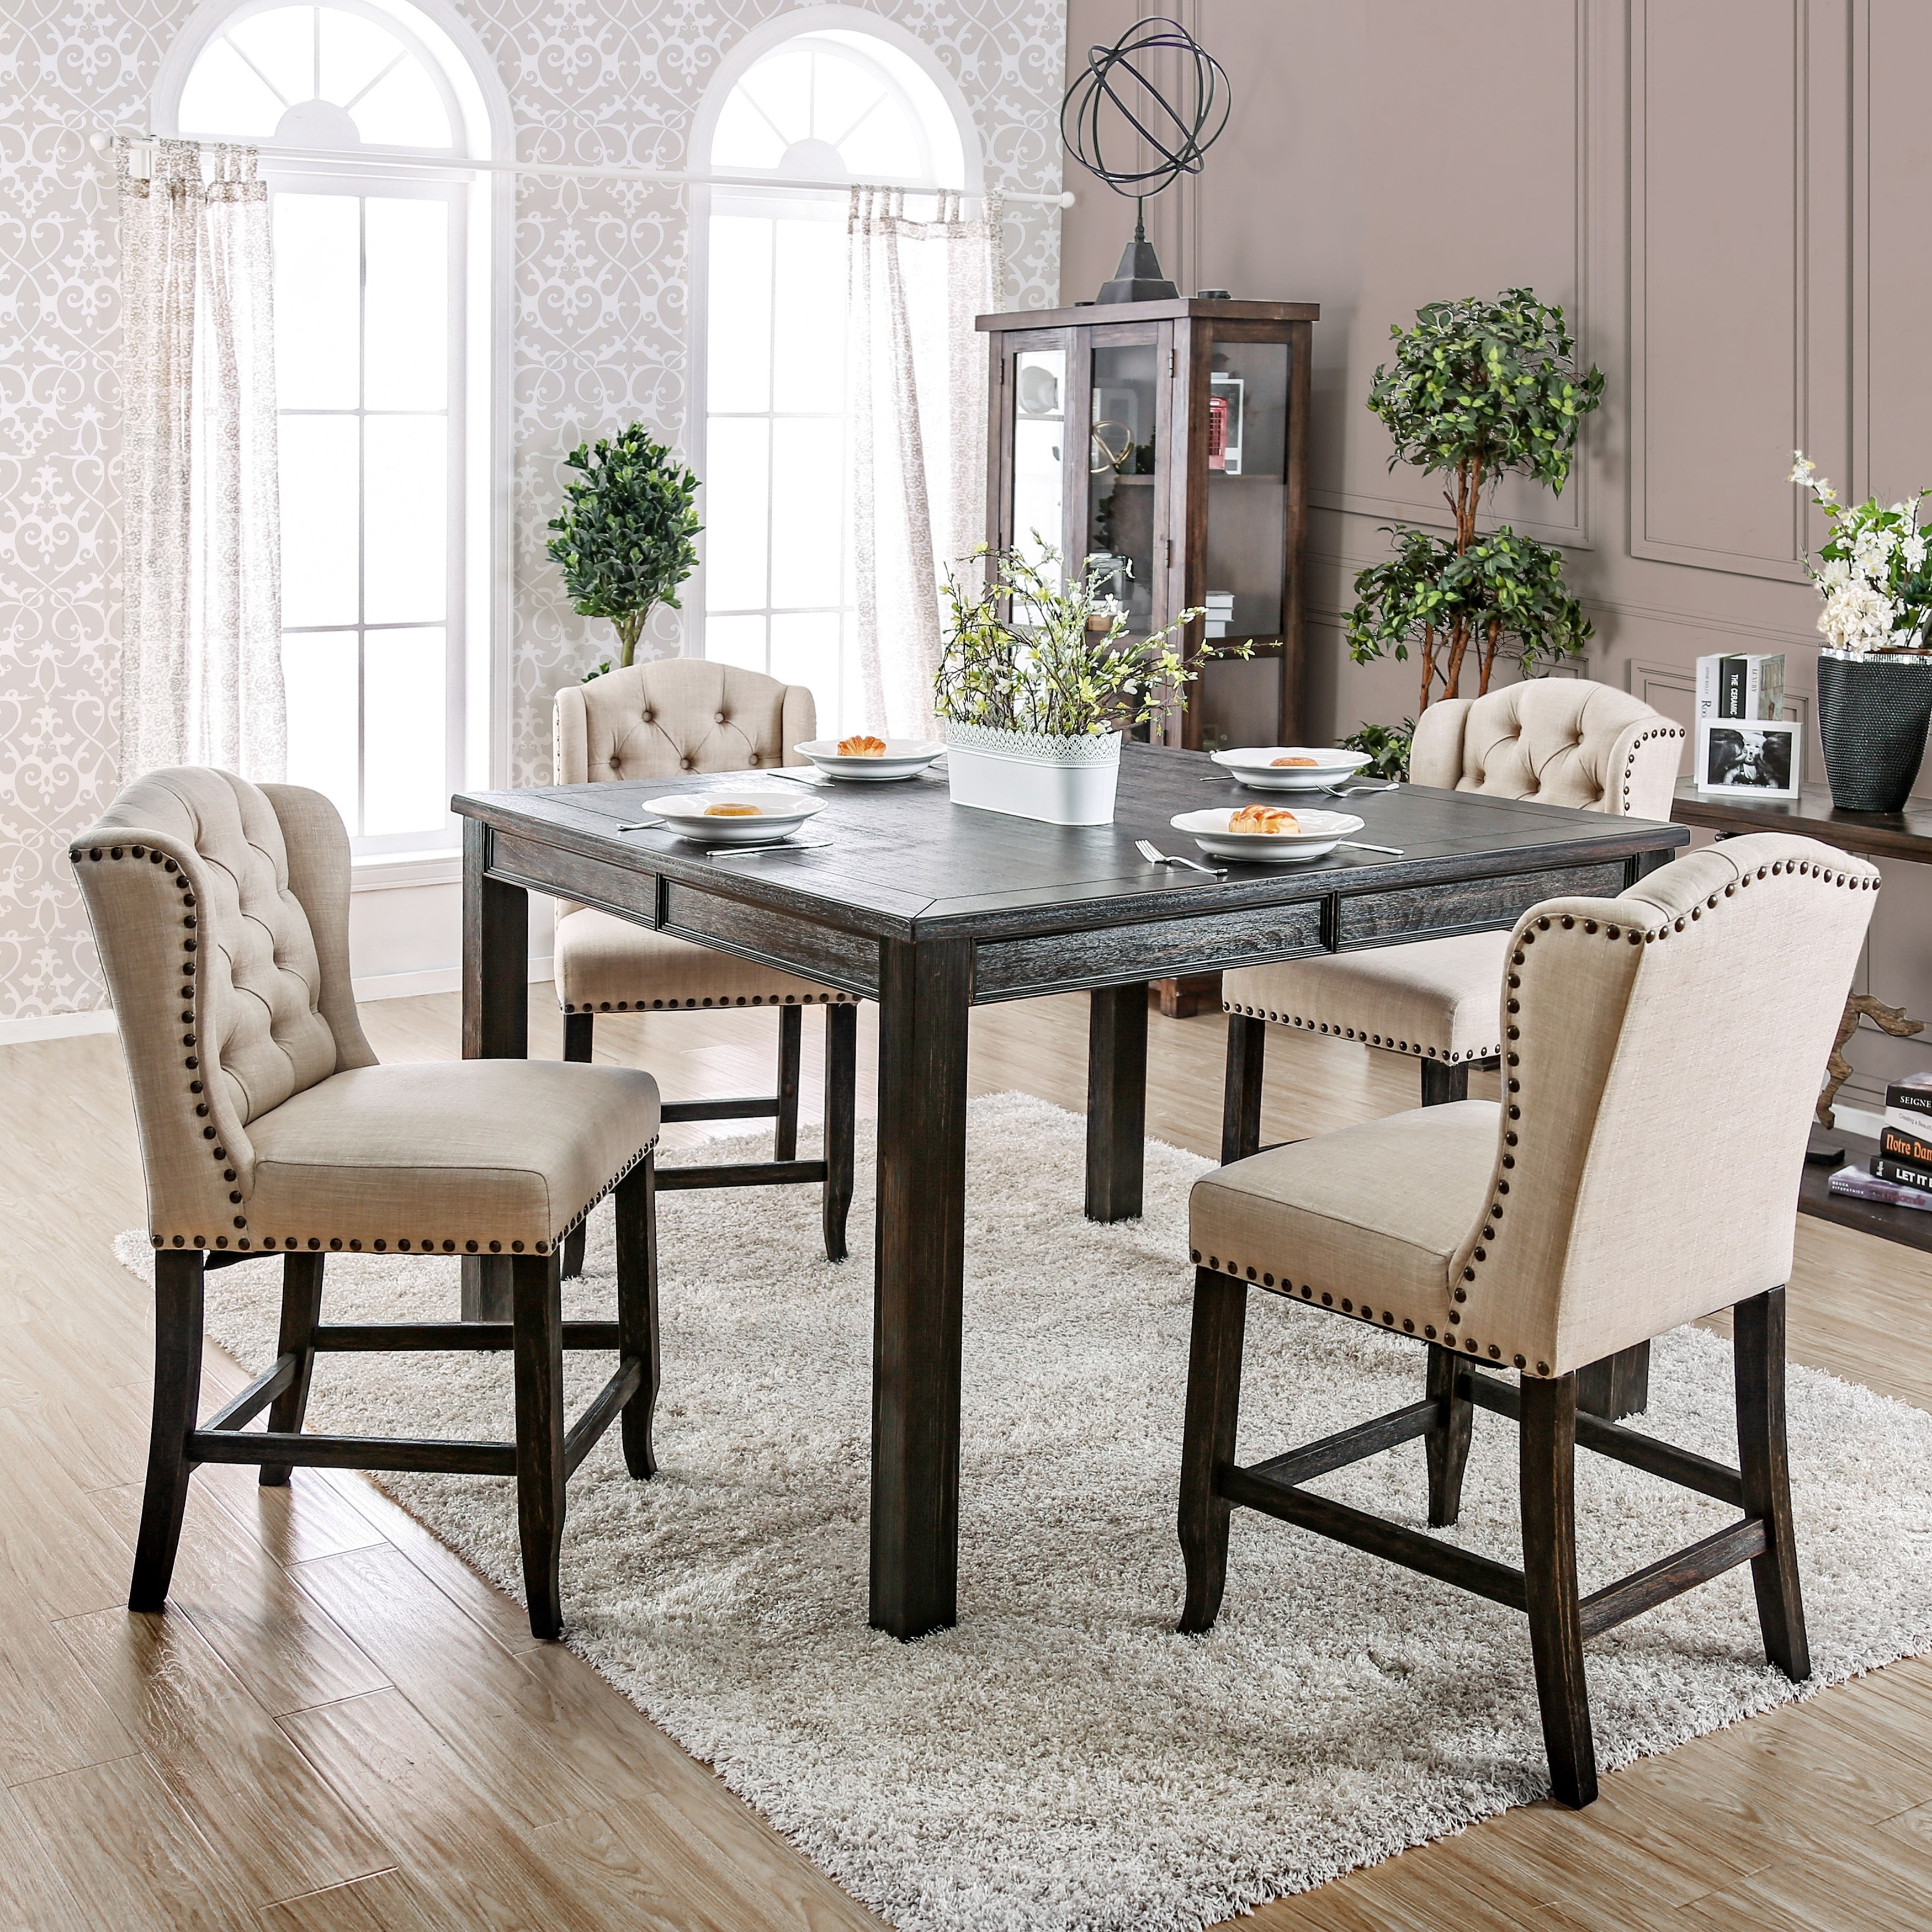 Superb Buy High Back Counter Bar Stools Online At Overstock Our Machost Co Dining Chair Design Ideas Machostcouk